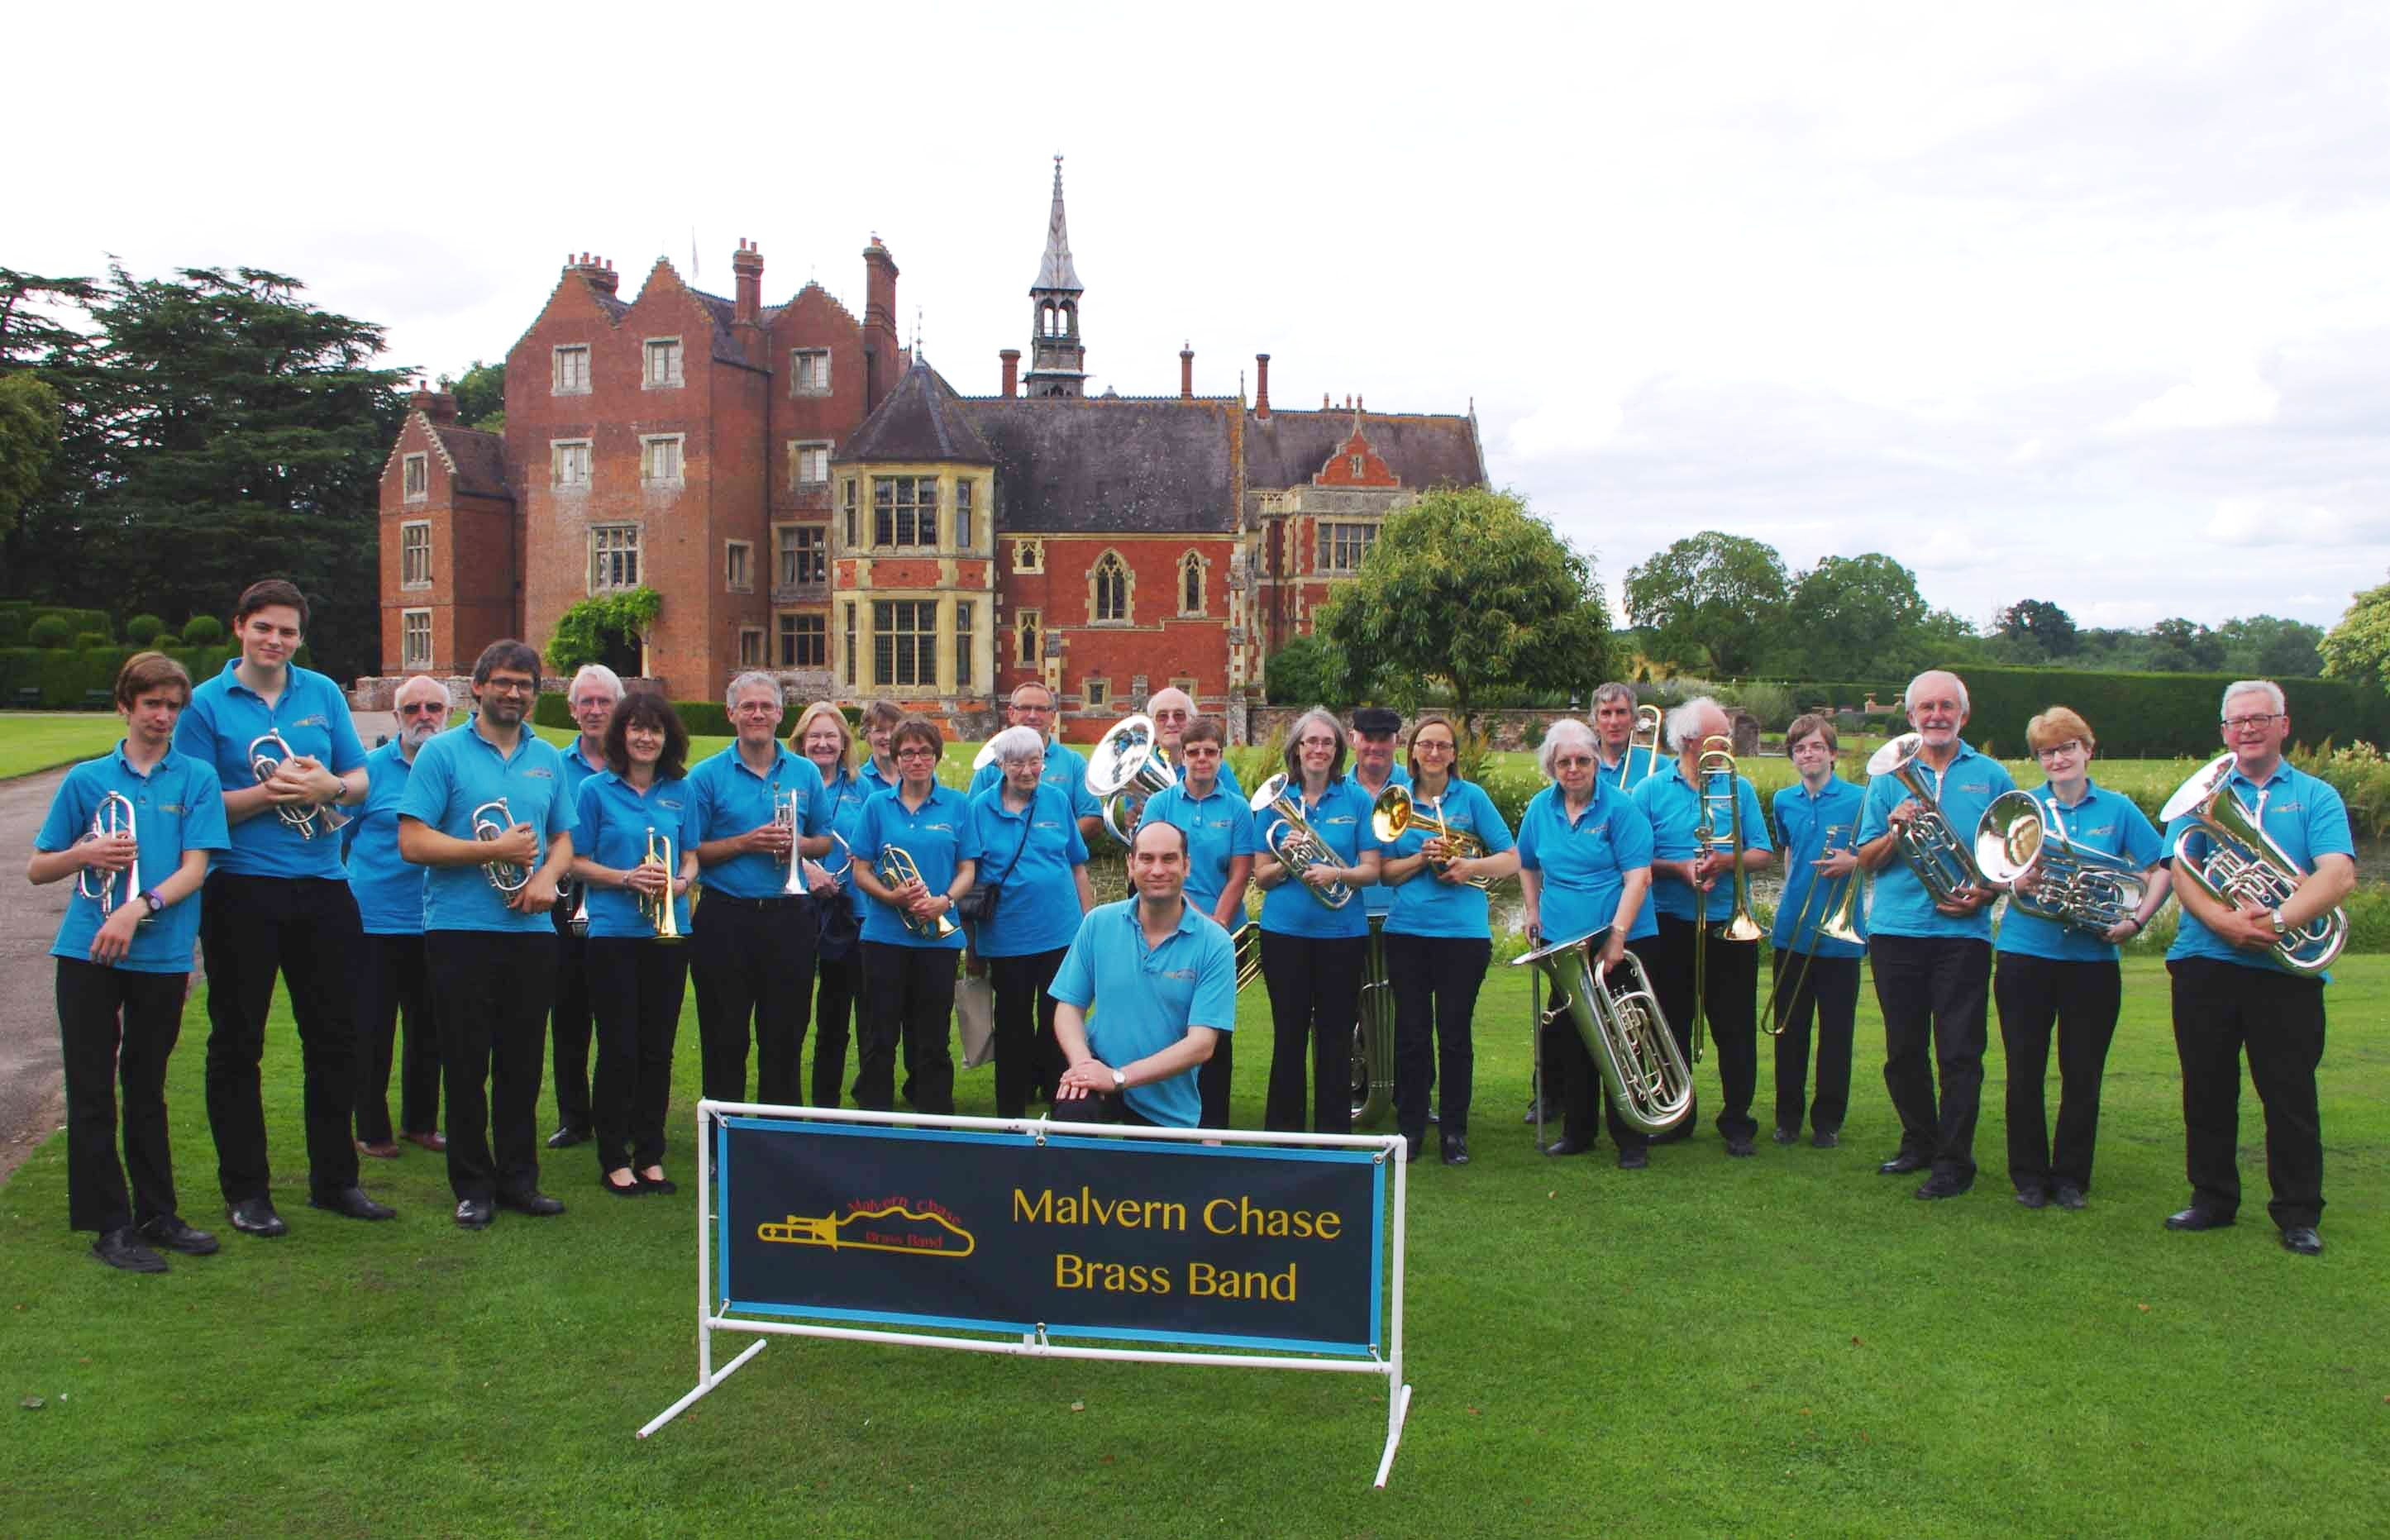 Malvern Chase Brass Band